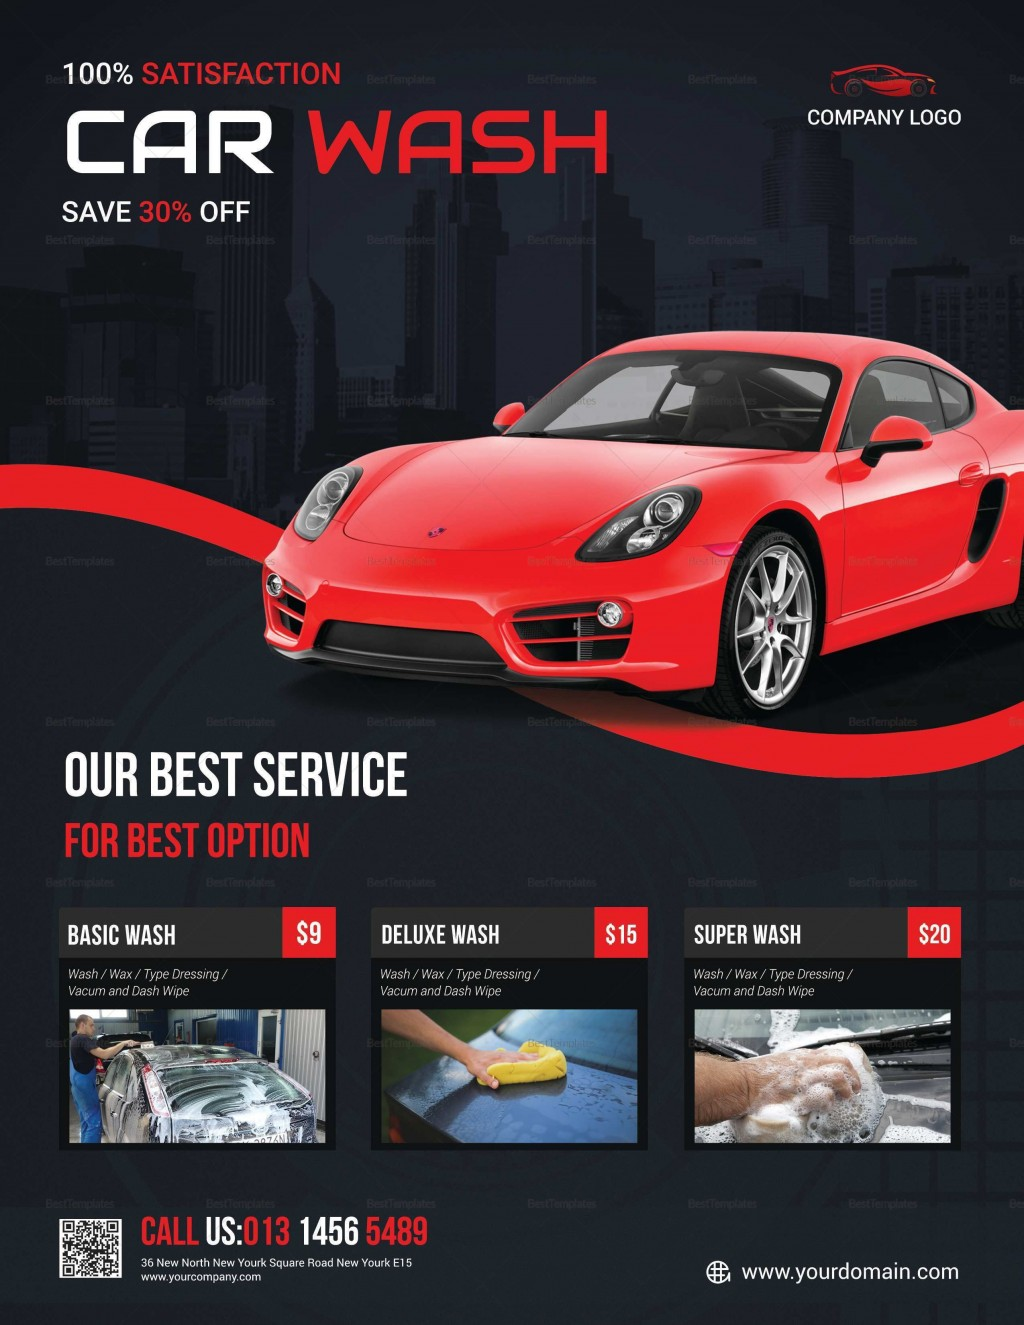 002 Archaicawful Car Wash Flyer Template Example  Free Fundraiser DownloadLarge